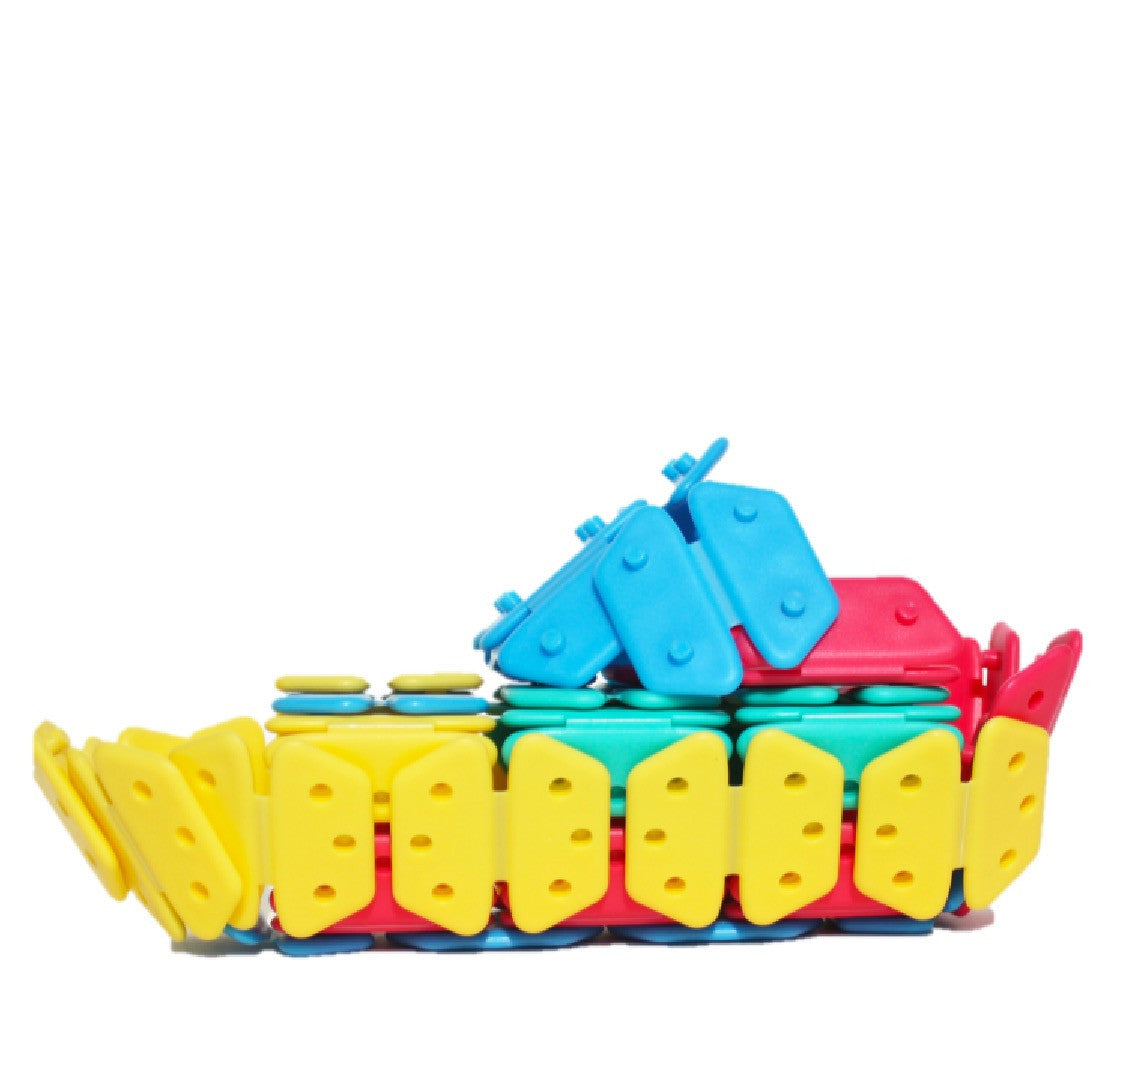 Builder Toy MICLIK 2 Sets